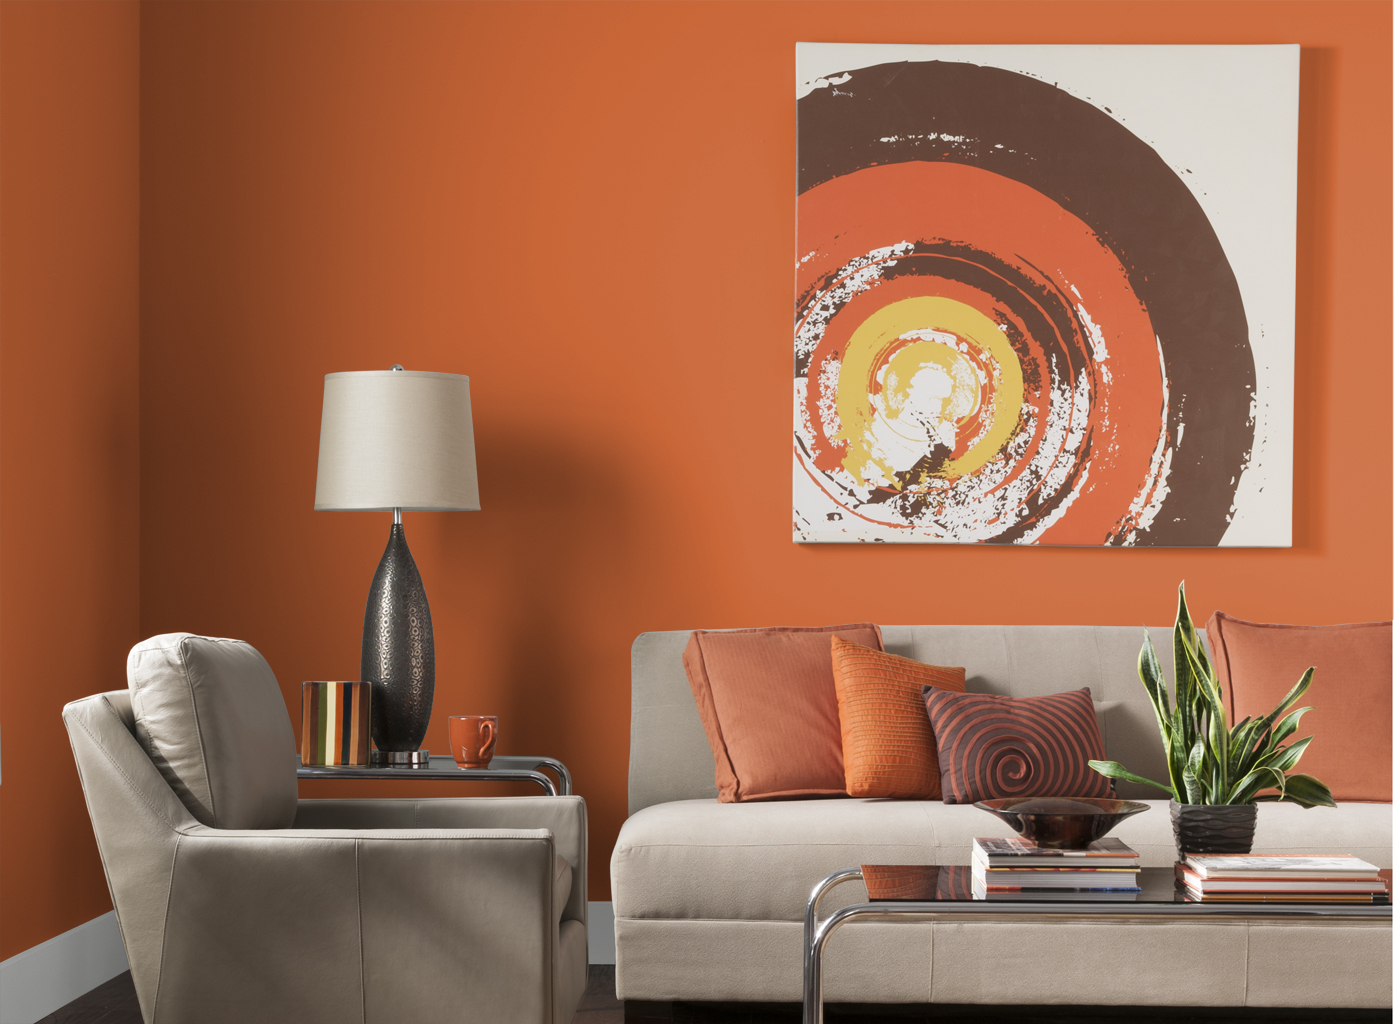 Adorable-Design-Of-The-Orange-Living-Room-With-Orange-Wall-Added-With-Grey-Sofa-Ideas-And-Glass-Table-Ideas.jpg